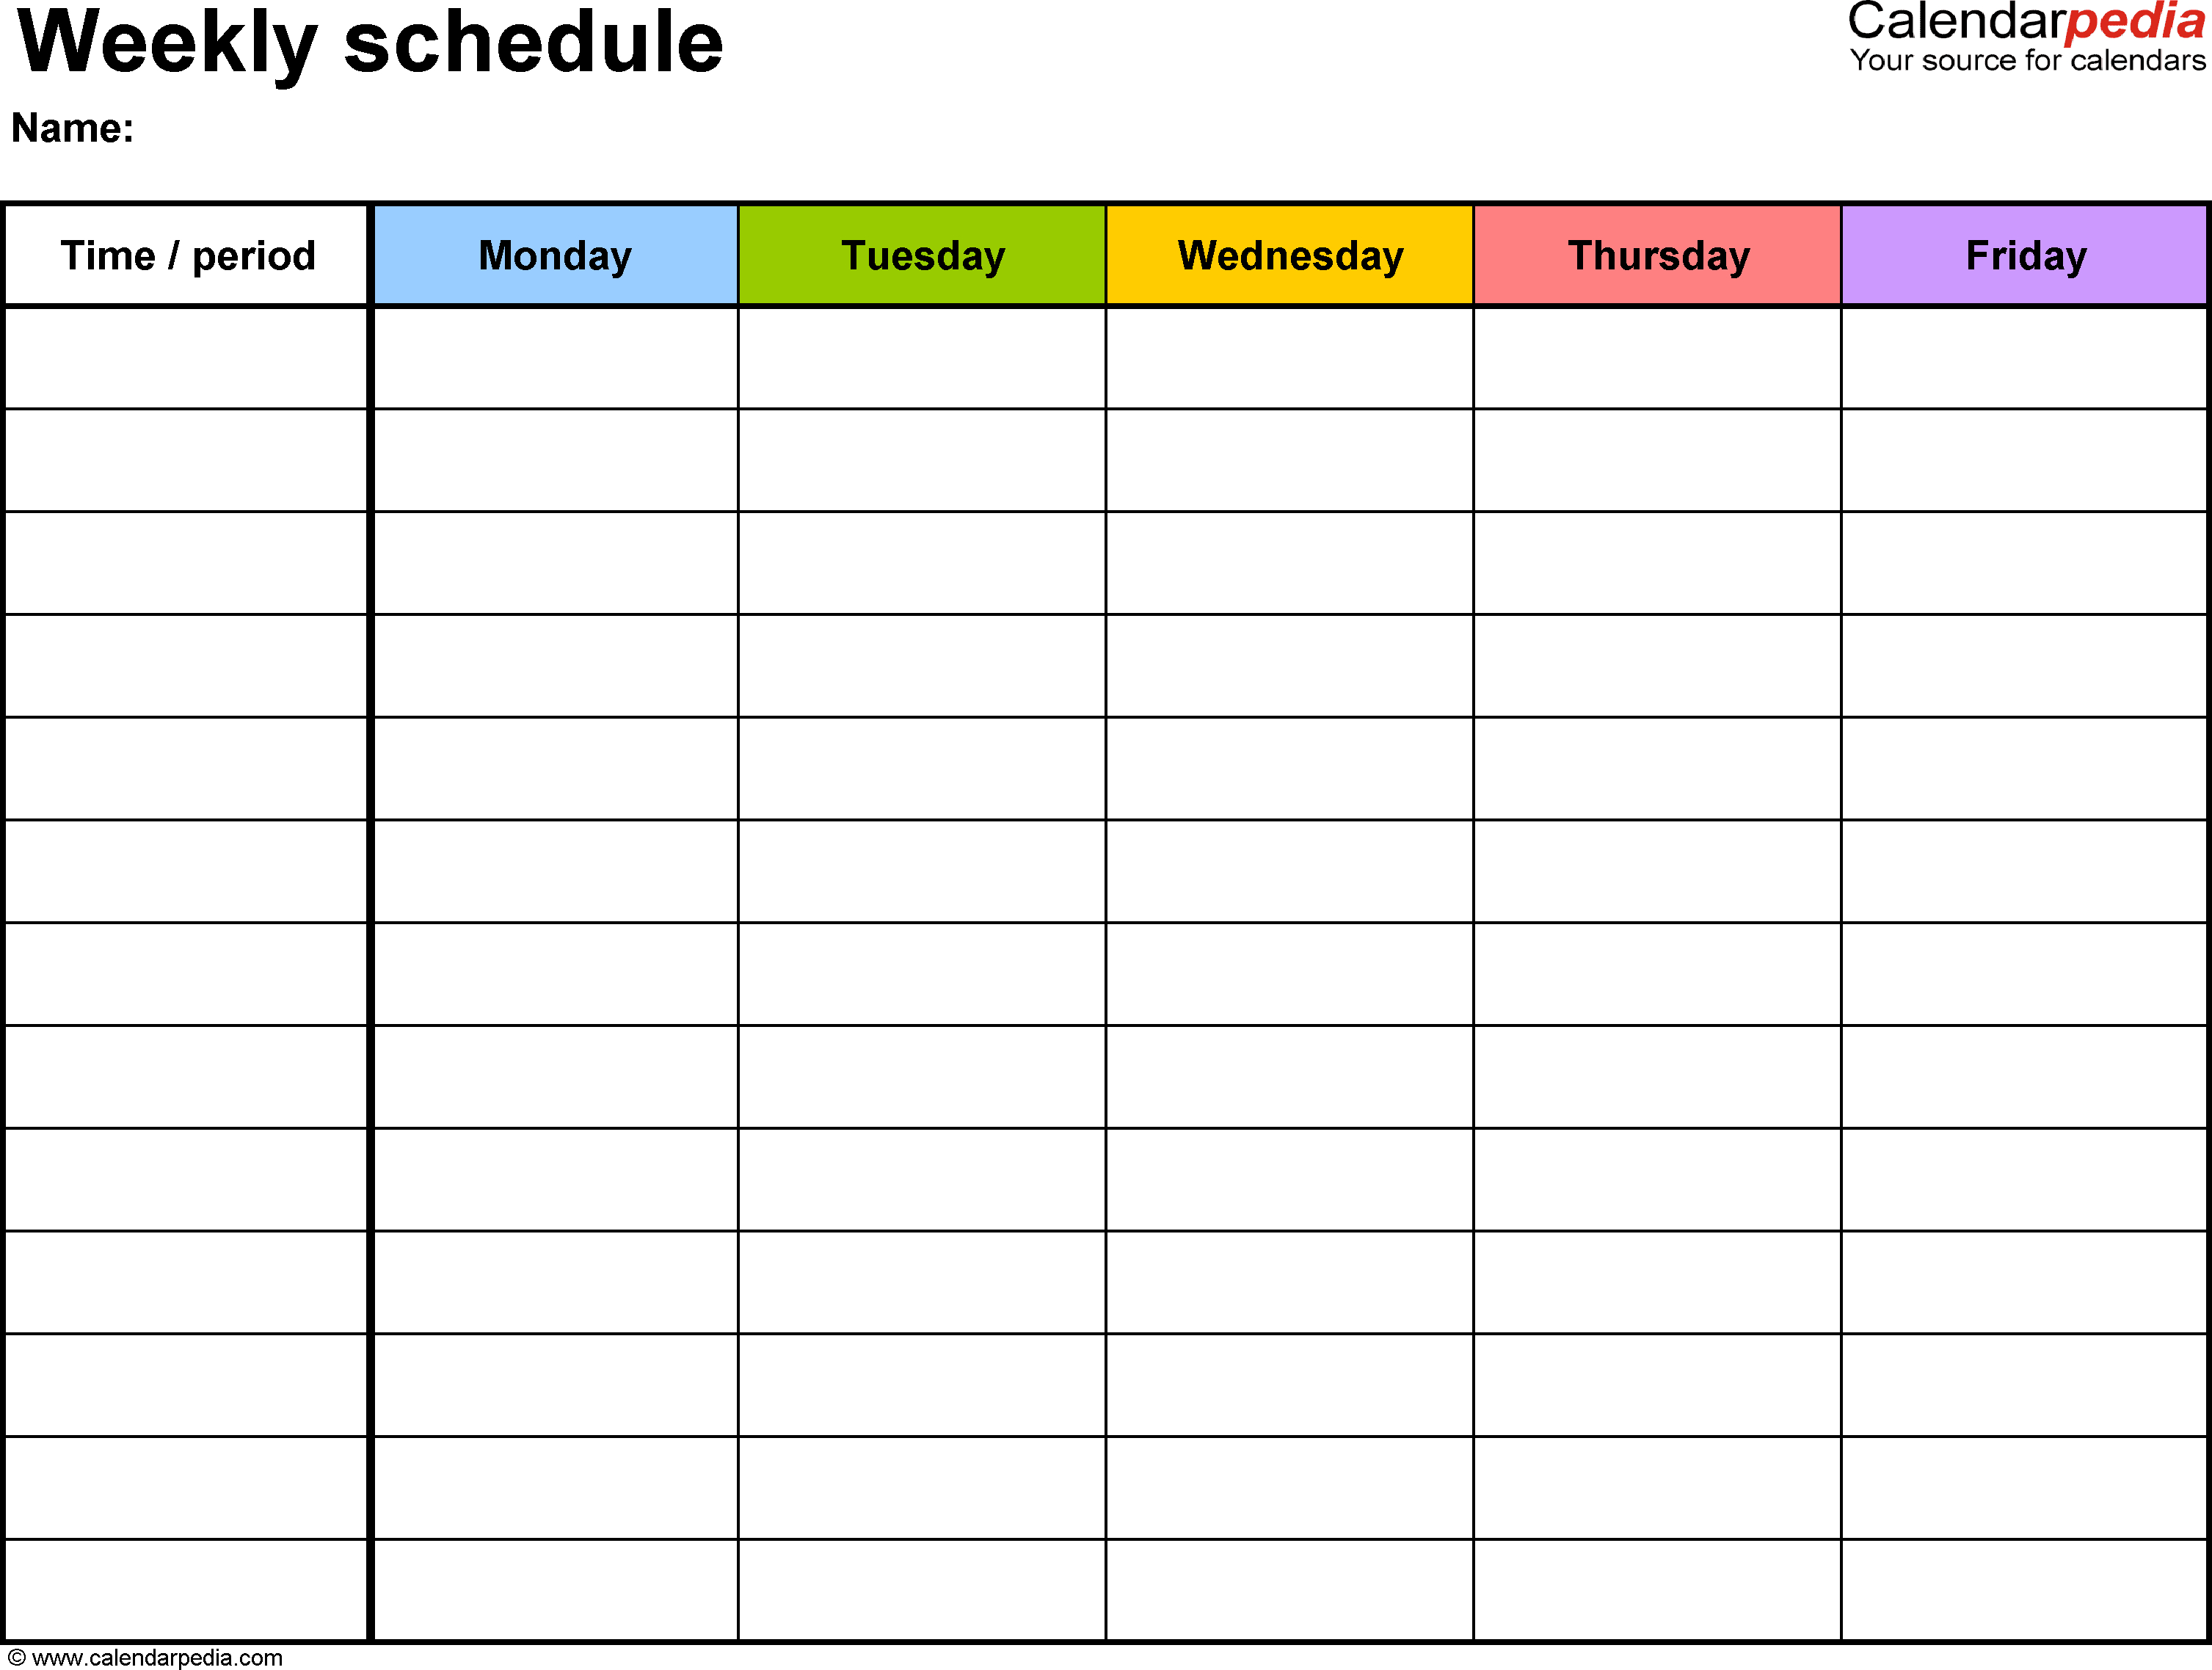 Weekly Schedule Template For Word Version 1: Landscape, 1 throughout Monday To Sunday Calendar Template